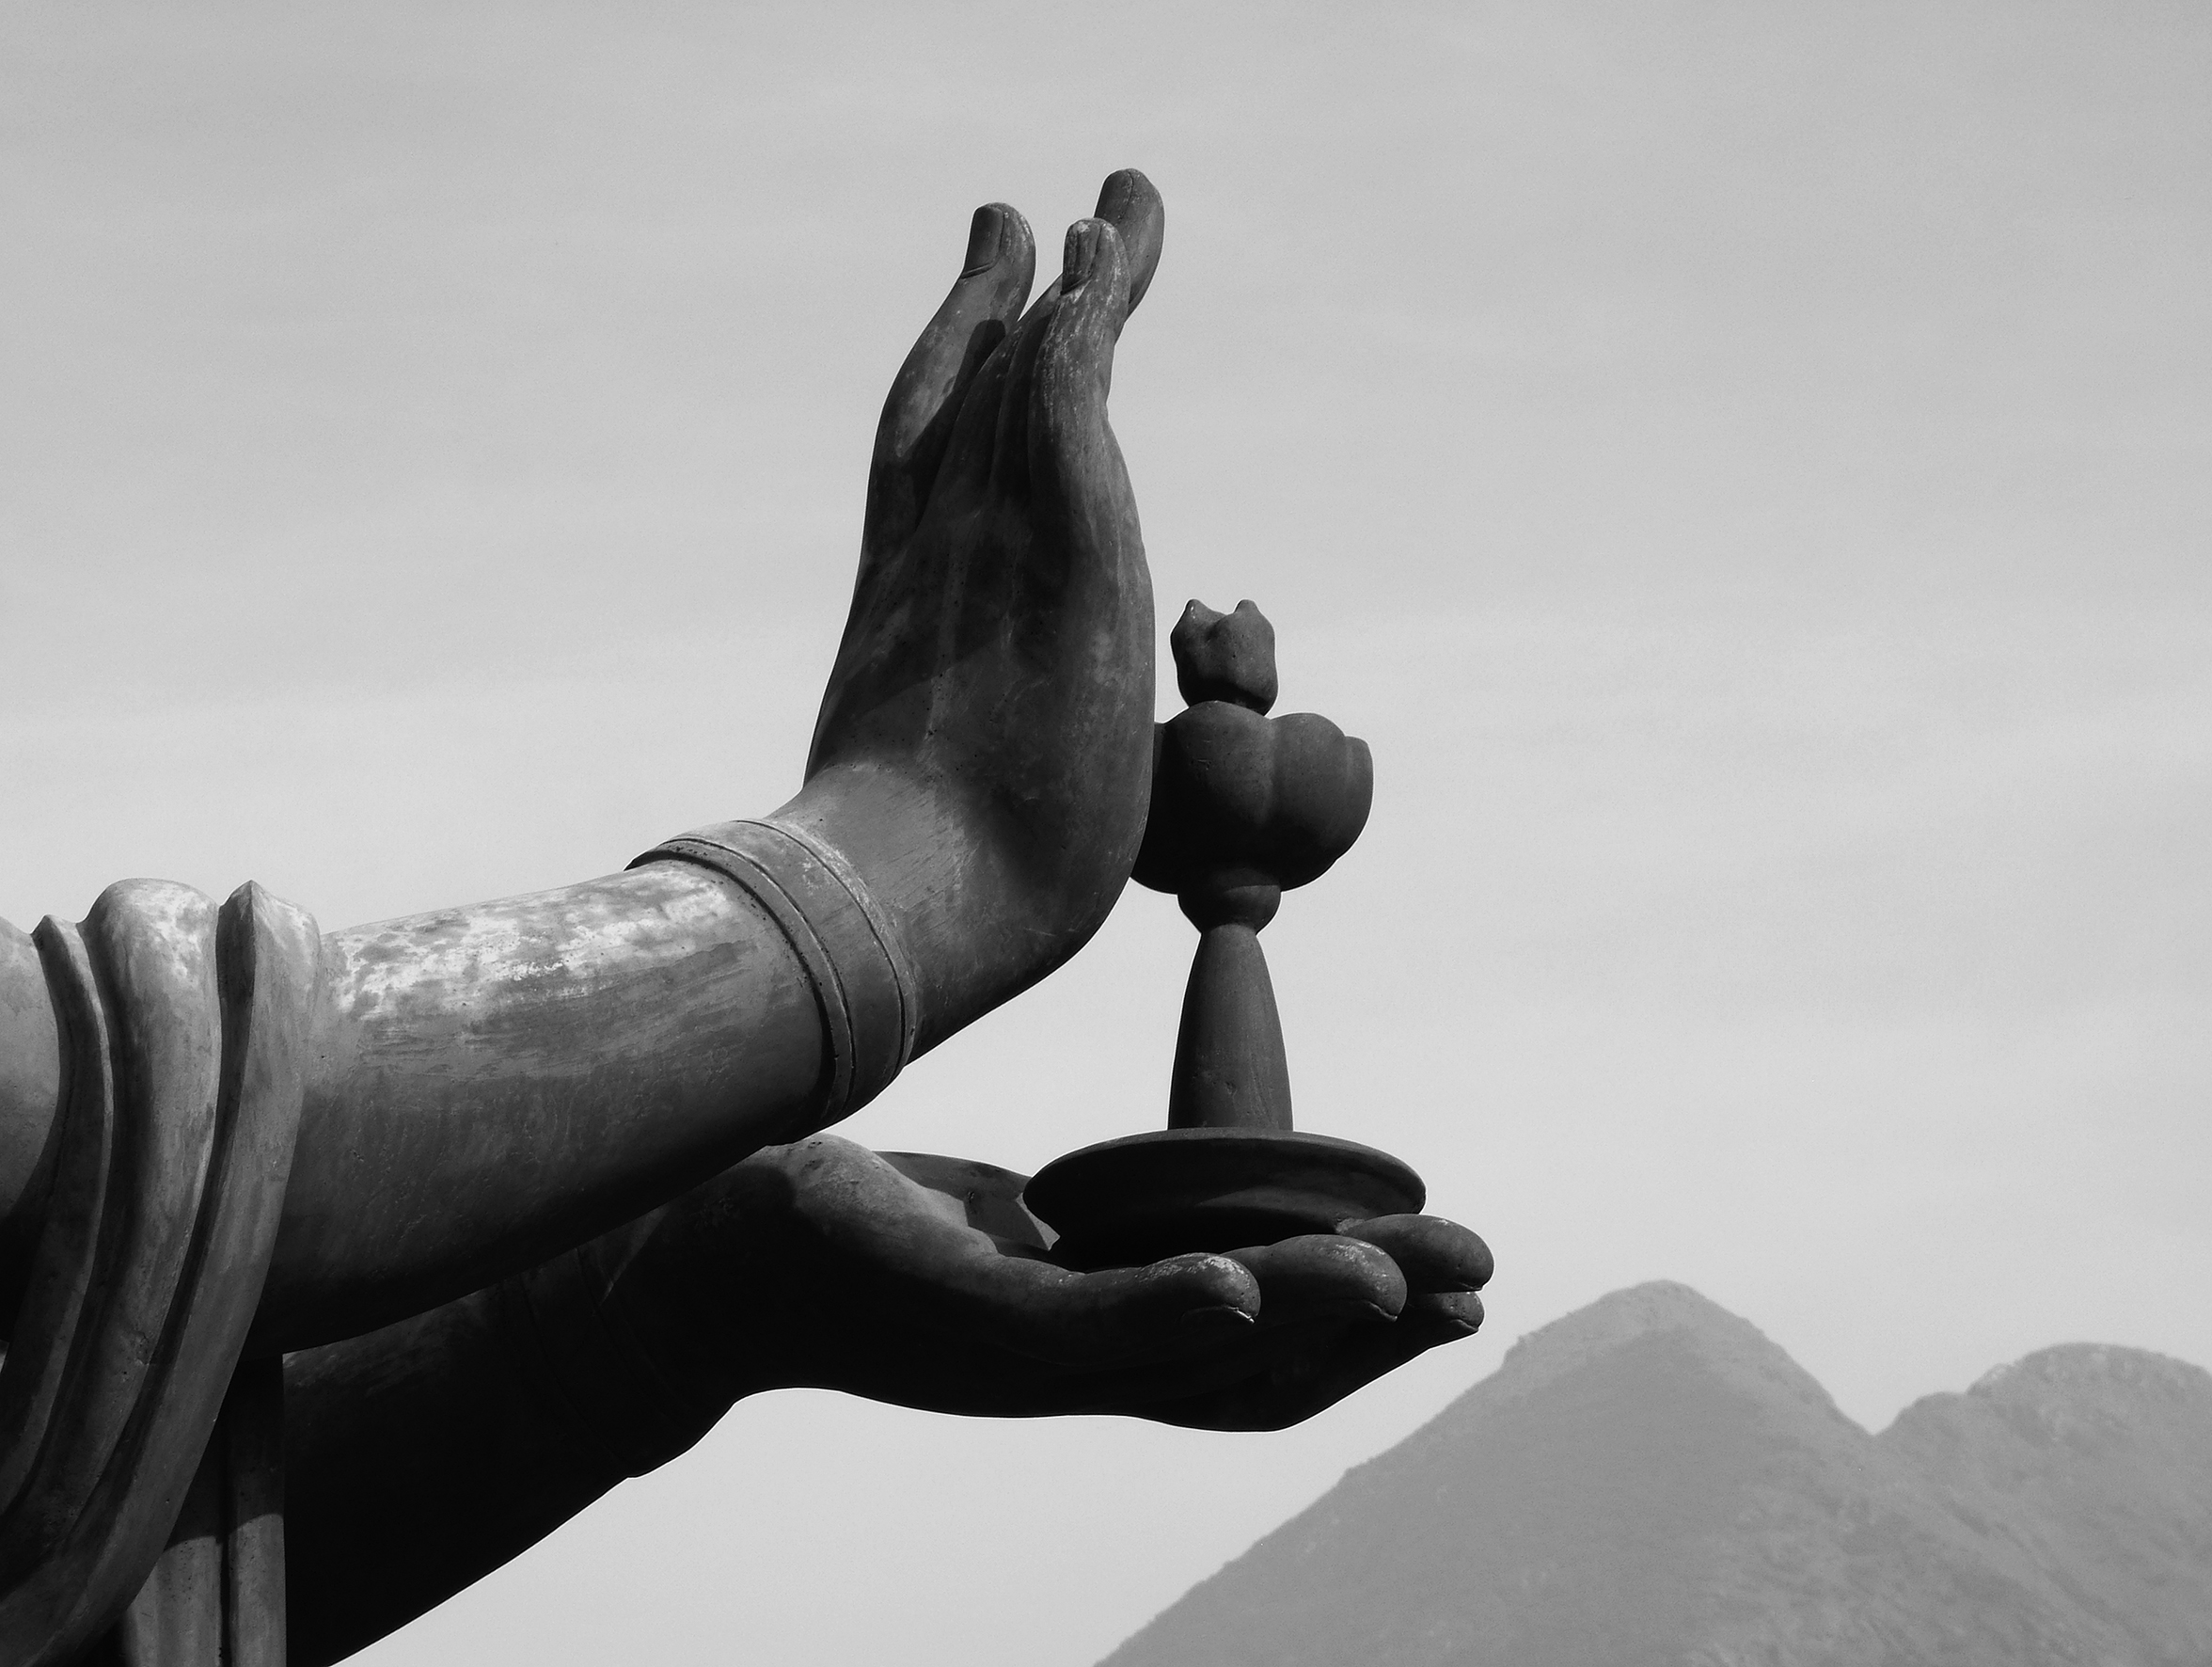 A close-up of a statue's hands holding what appears to be a lotus. Mountaintops are just peeking from the bottom-right corner of the image.